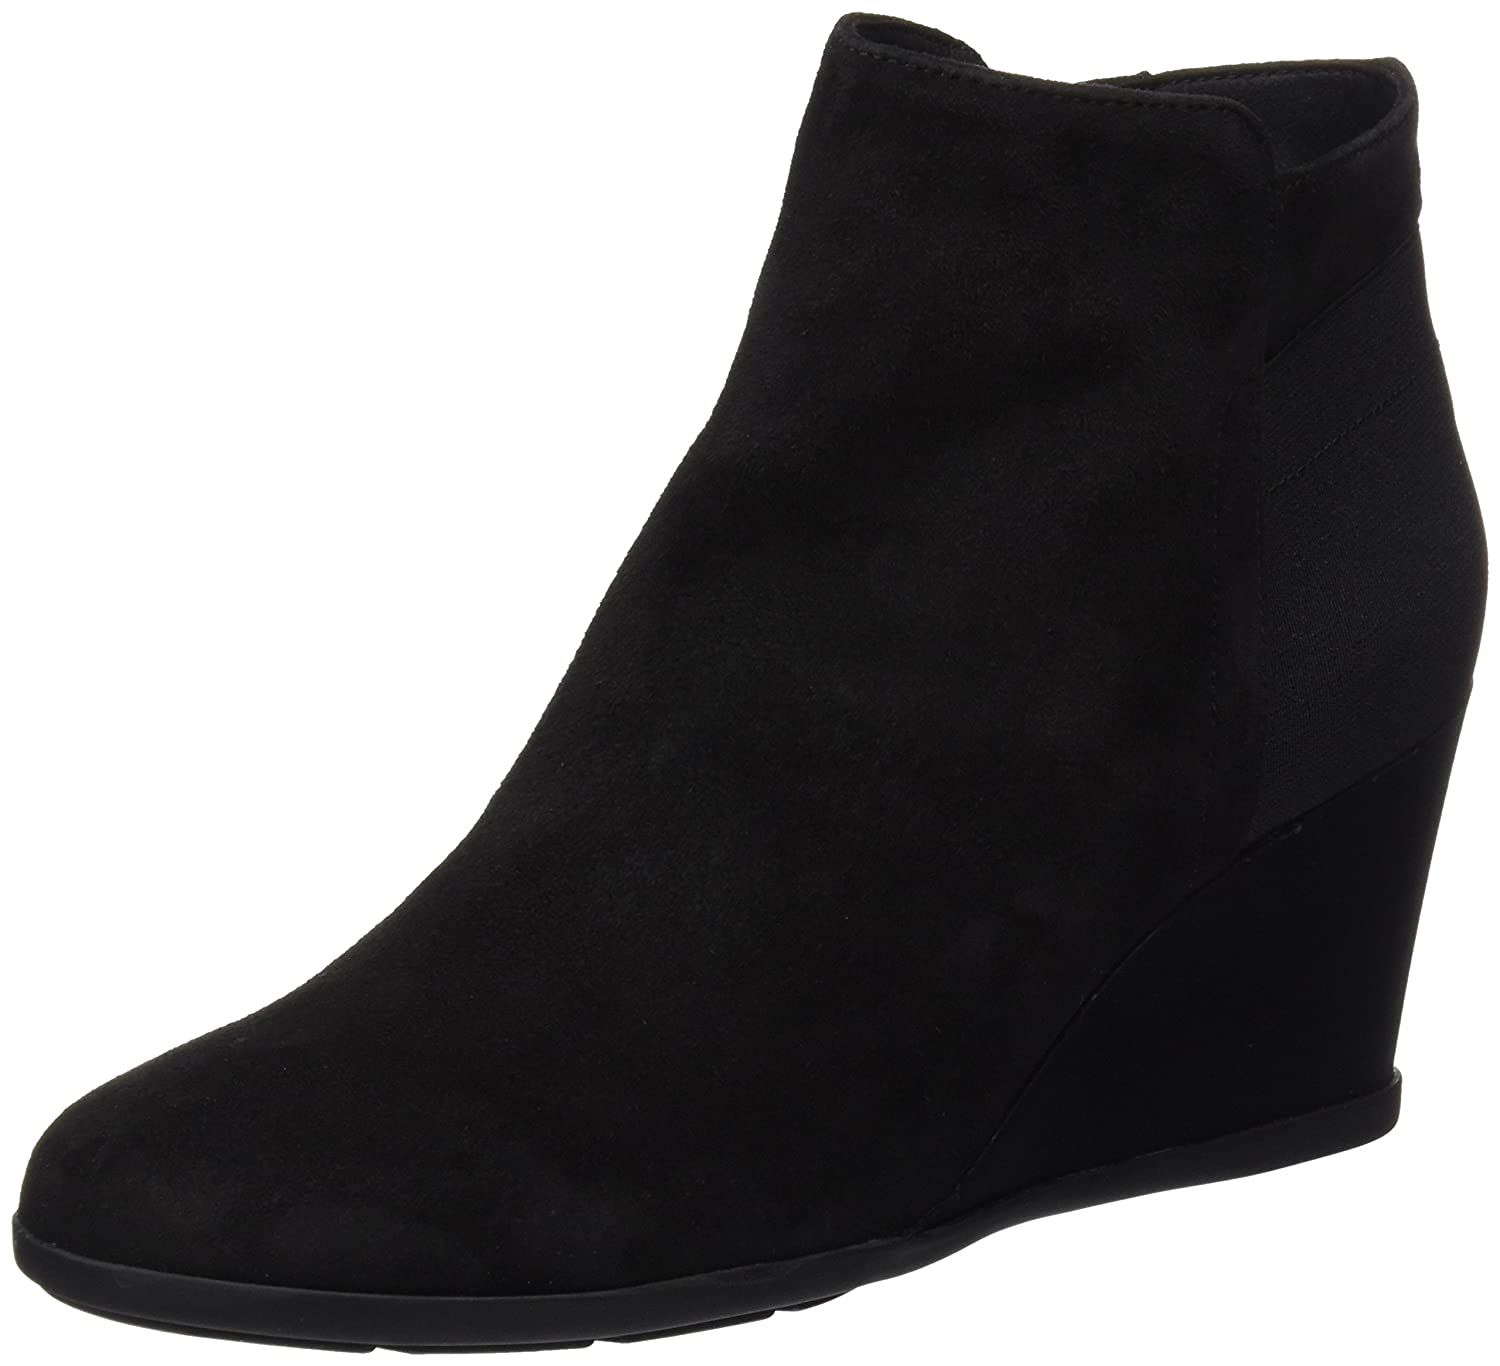 Geox D Inspiration Wedge Inspiration C, Bottes C, Femme Wedge Noir (Black) f308c82 - gis9ma7le.space